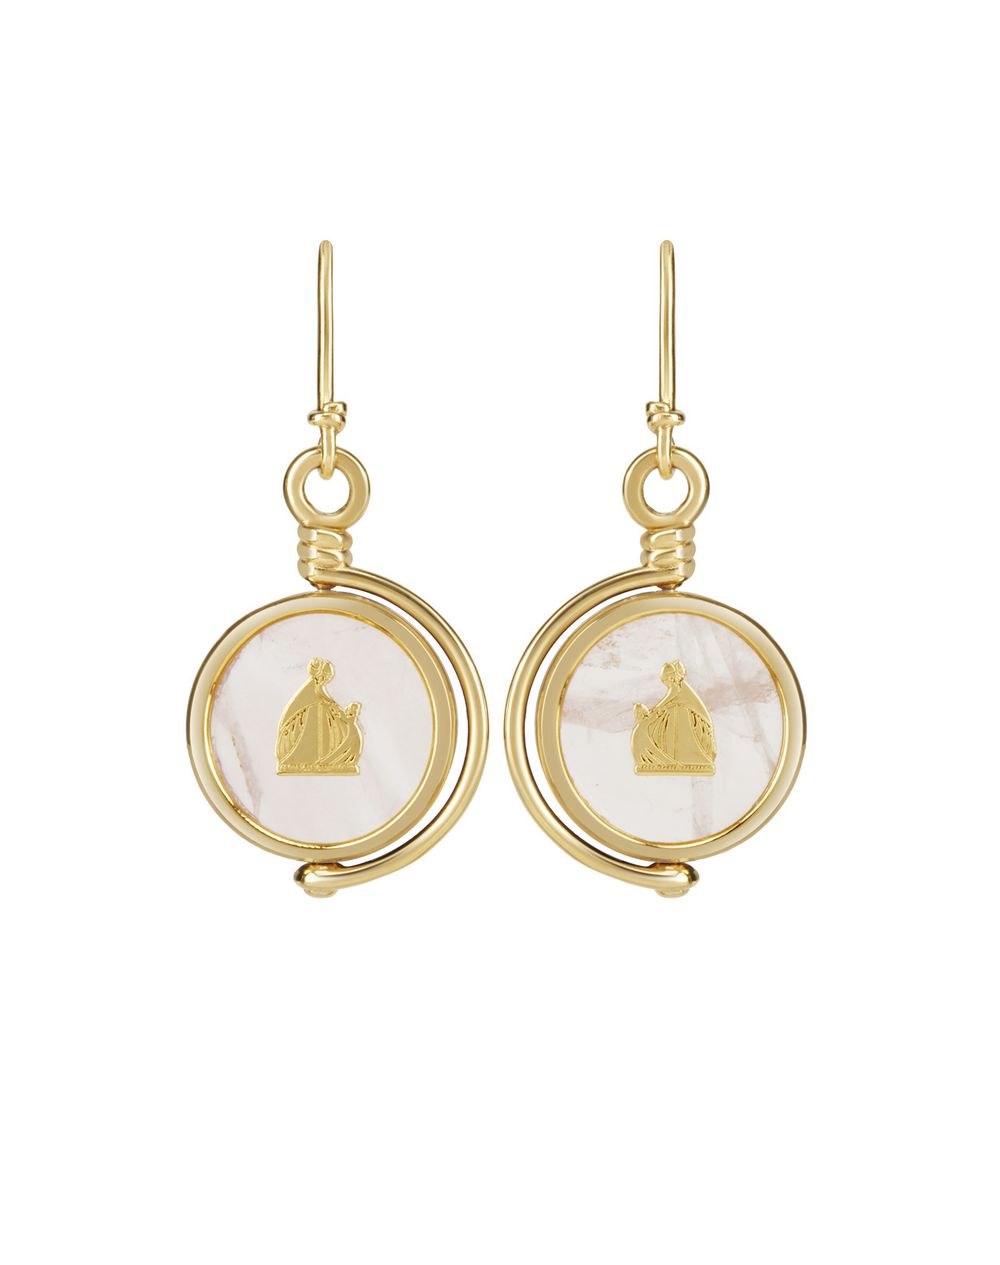 MOTHER AND CHILD EARRINGS  - Lanvin